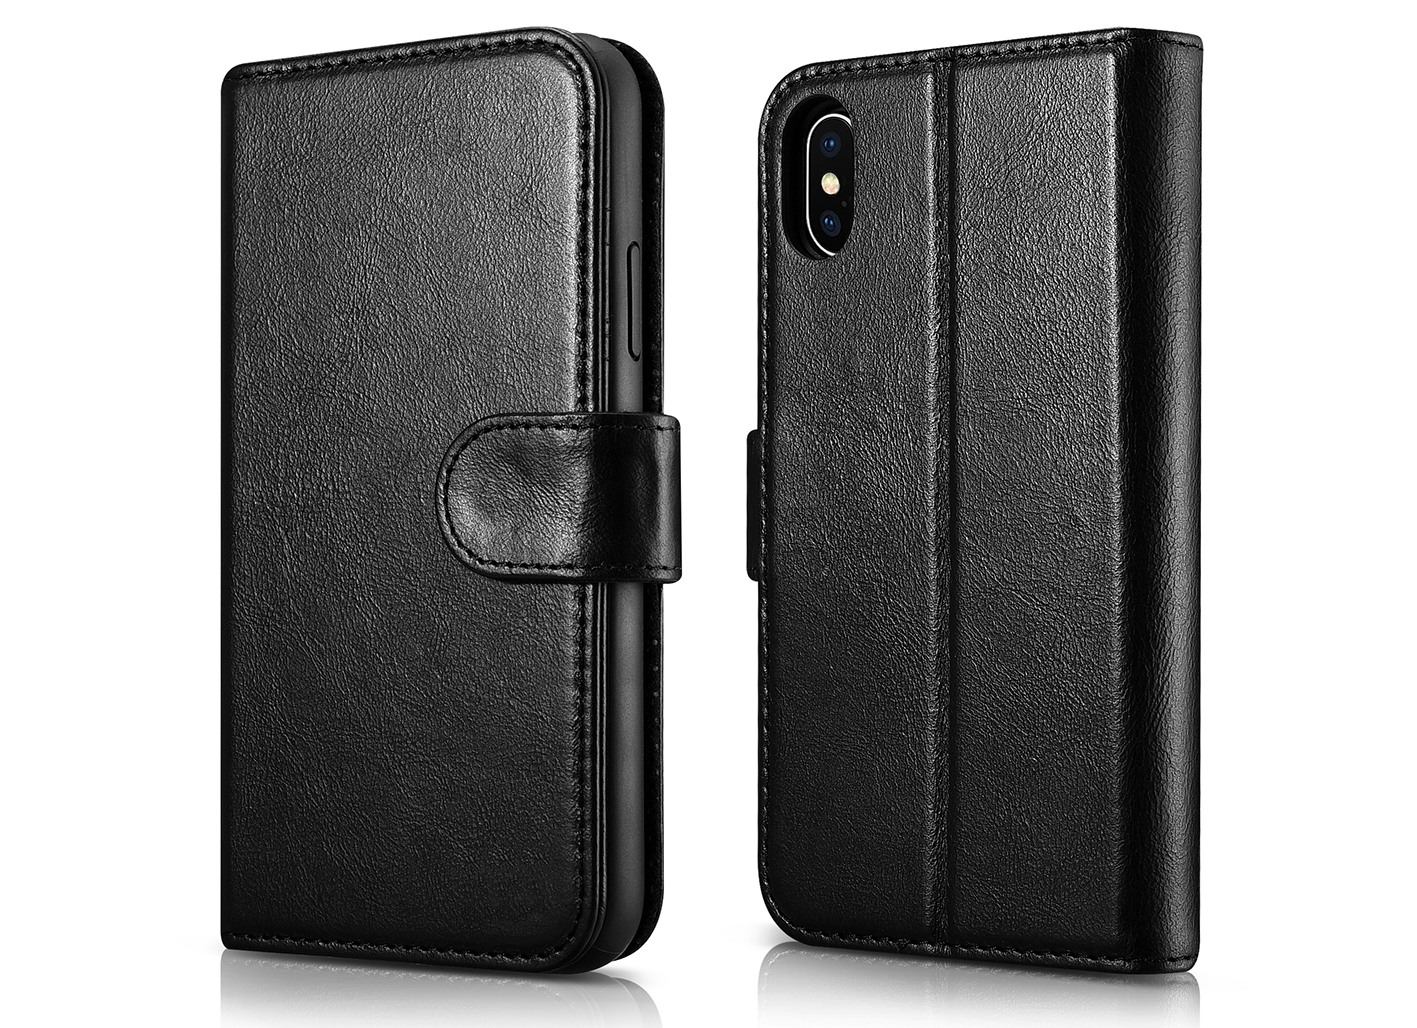 Husa piele naturala 2 in 1, inchidere magnetica, tip carte + back cover, stand, iPhone X / XS - iCarer Detachable, Negru